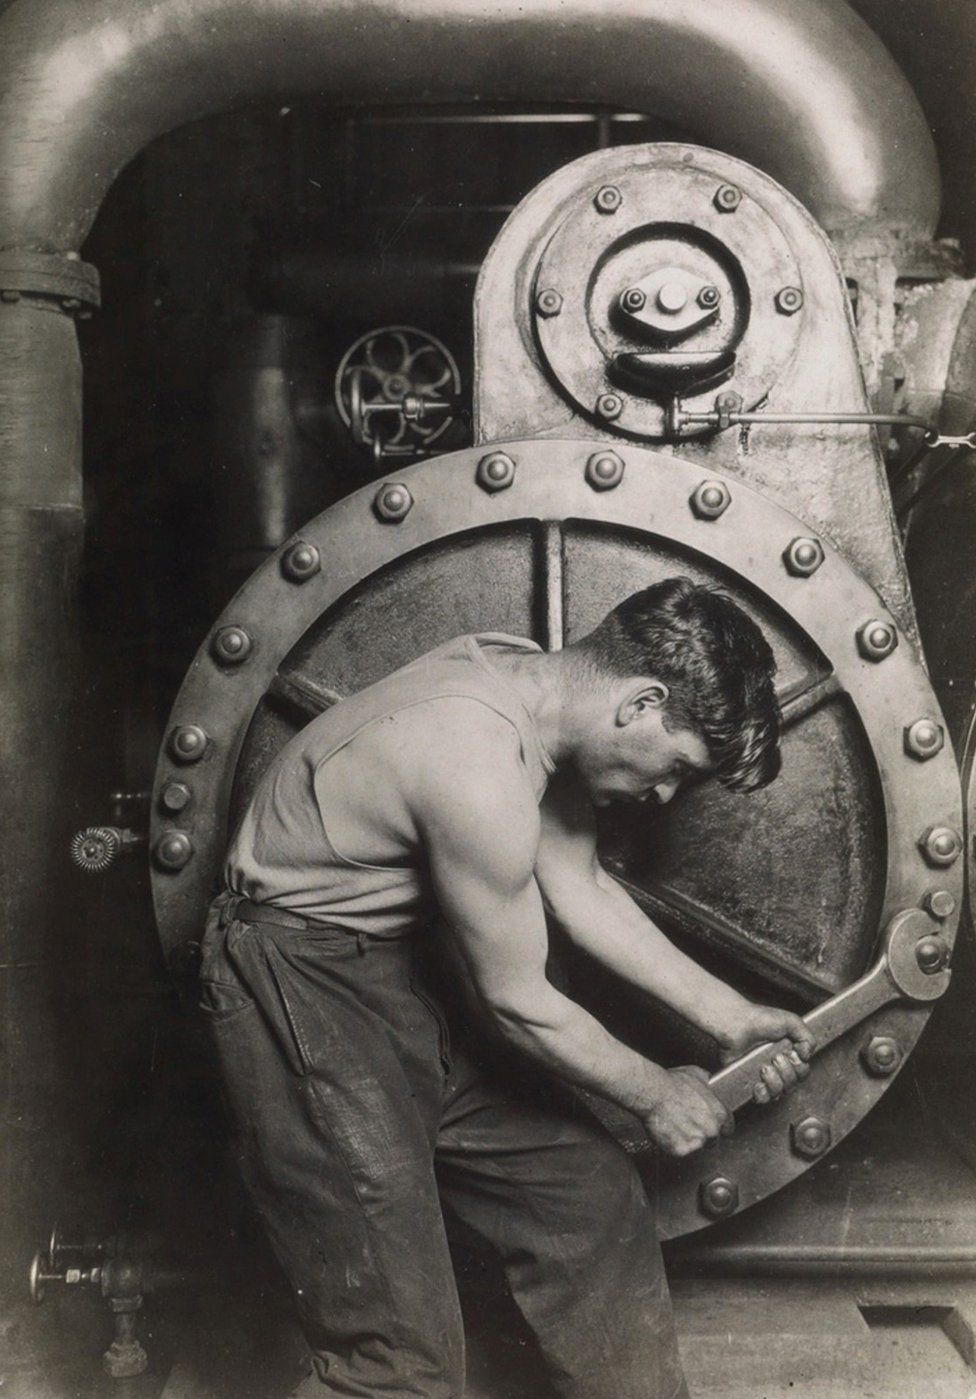 fotografie di Lewis Hine: Un meccanico alla Steam Pump nella Electric Power House, 1921